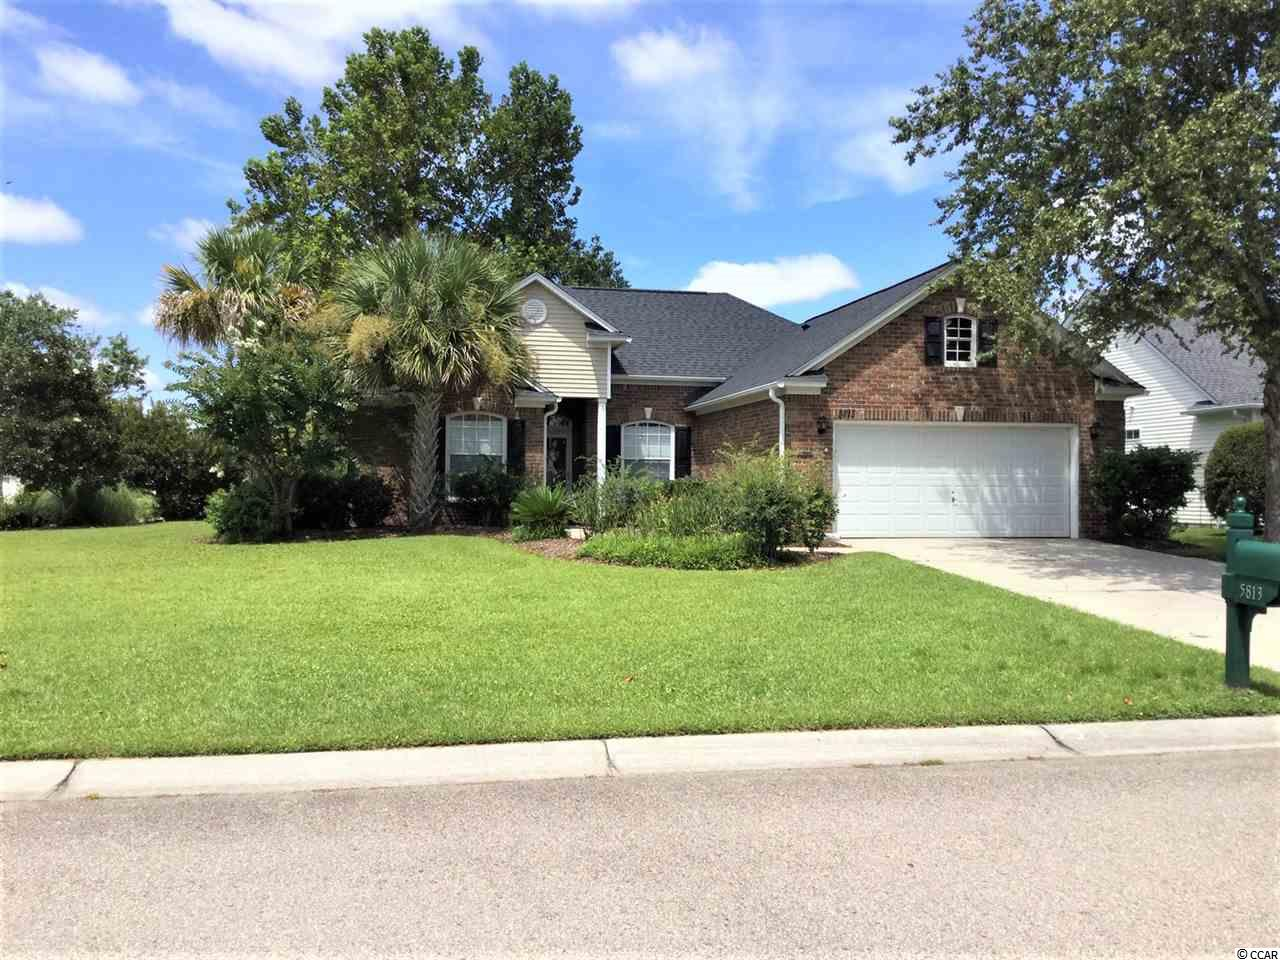 This is A Fantastic deal on a wonderful single level 3/2 floorplan on a corner lot leading into a cul de sac - the peaceful and friendly community of Bridle Ridge at Barefoot welcomes you home! Every time a home in this community comes available it is sold within days. This home is beautifully landscaped, with a welcoming front entry and an open concept living and dining area! New Roof 2018 and New HVAC 2015!  The climate controlled Carolina room is a wonderful extension of the living space perfect for entertaining and family gatherings!  With vaulted ceilings and ceiling fans, tons of natural light, and a cozy eat in kitchen, this is the perfect place to call home!  The split bedroom floorplan offers a private Master suite on one side of the living space with an oversized master bath complete with soaker tub and separate shower plus a walk in closet!  The other two bedrooms are on the opposite side of the home nestled within a private alcove and a spacious shared bath with transom window and tub/shower combo! All 3 bedrooms have ceiling fans, window treatments and lots of natural light!  The back patio is accessible from the Carolina Room for grilling out!  Barefoot Resort Residents club includes a clubhouse, exercise room, pool, playground and tennis courts! Plus owners in Bridle Ridge have access to the all new oceanfront cabana (under construction) complete with parking! Barefoot Resort is also the home of 4 championship golf courses!  What an incredible value so close to the beach and intercoastal! Priced to sell - this won't last long! Ask to see it today!